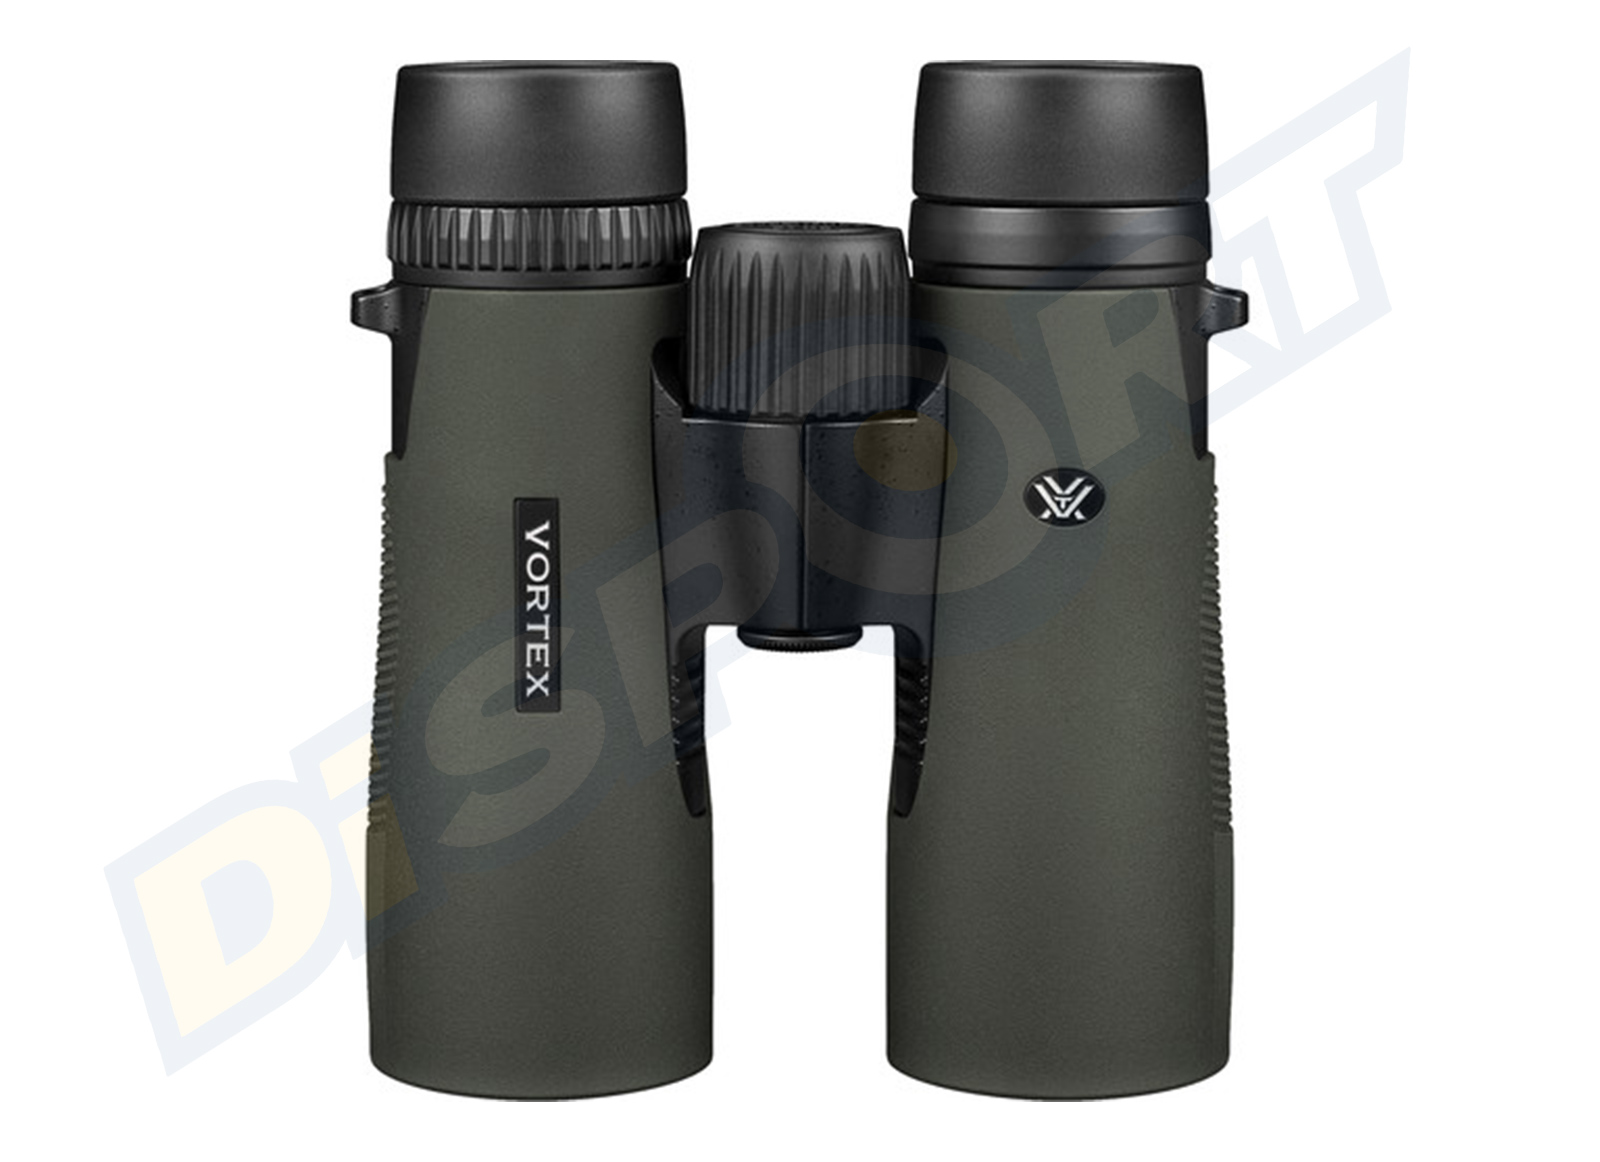 VORTEX OPTICS BINOCOLO - DIAMONDBACK HD 10x42 DB-215